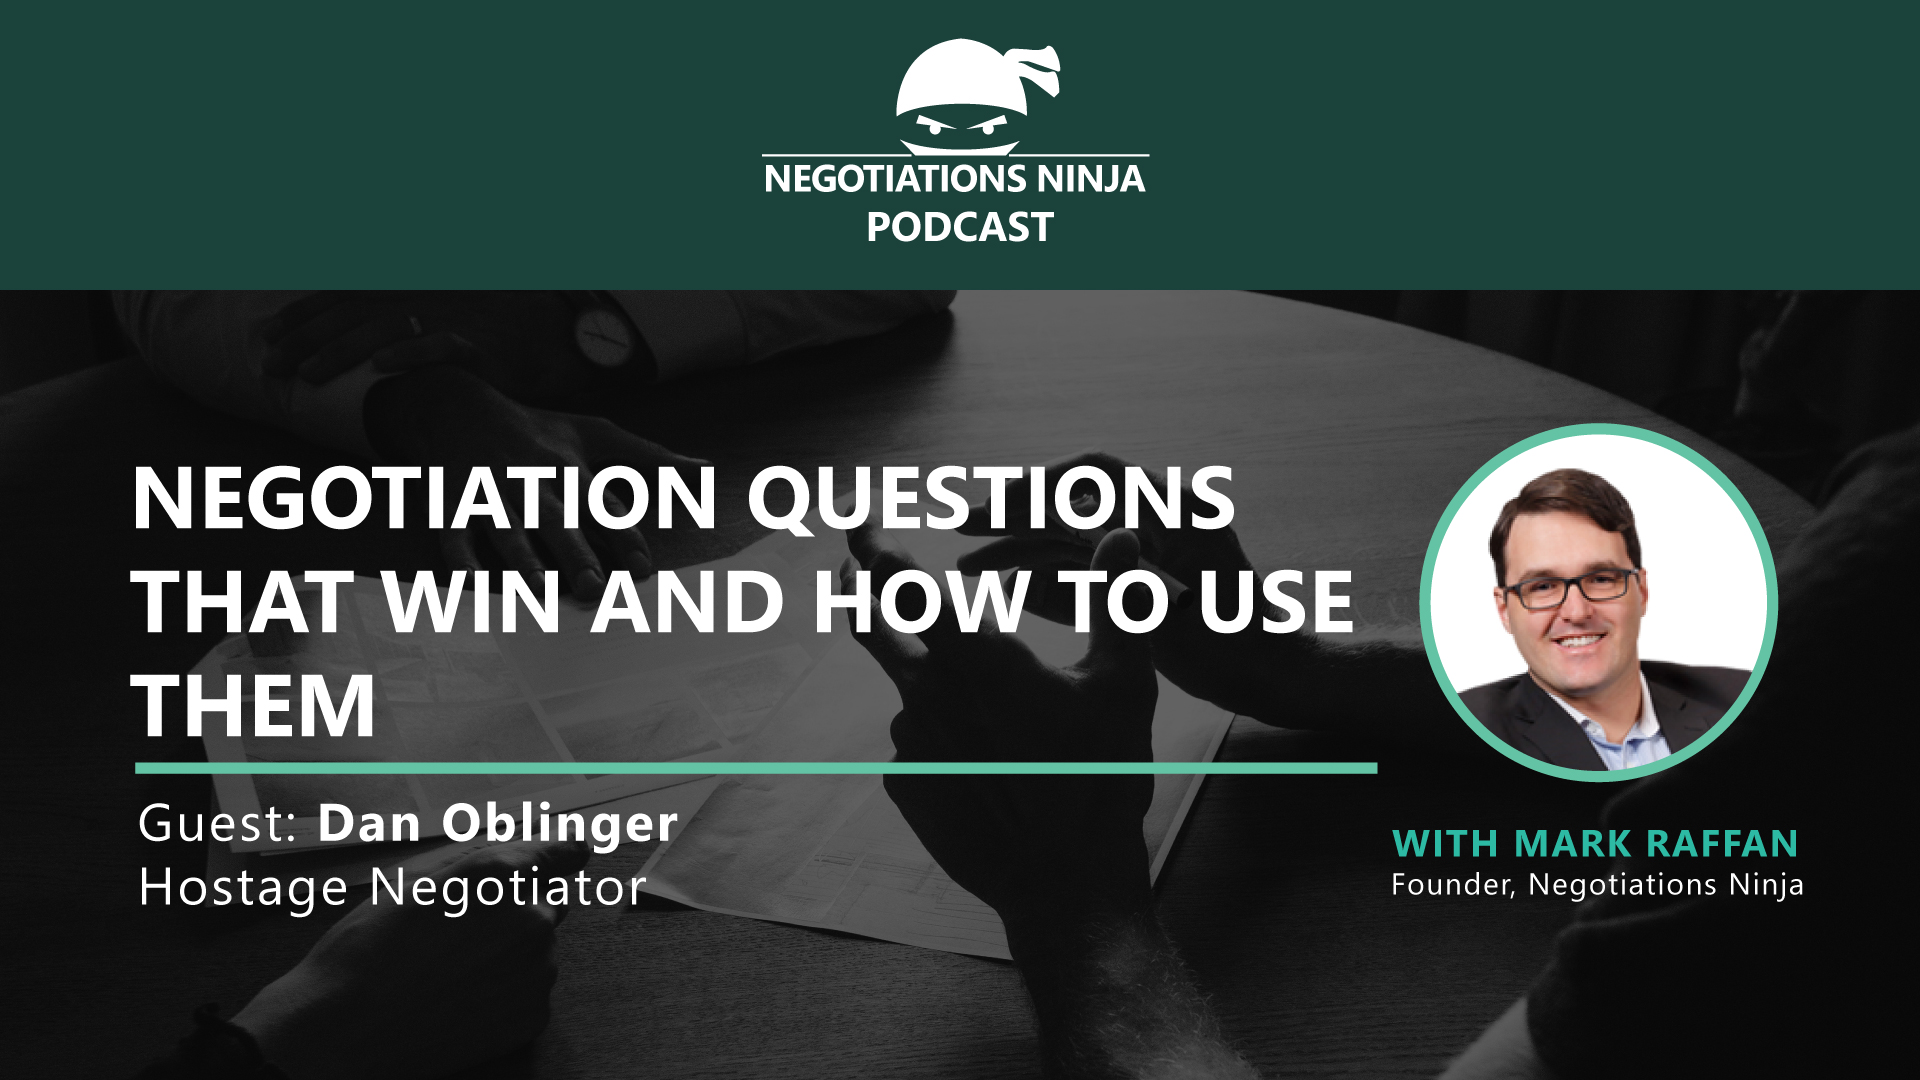 Negotiation Questions That Win And How To Use Them, with Dan Oblinger